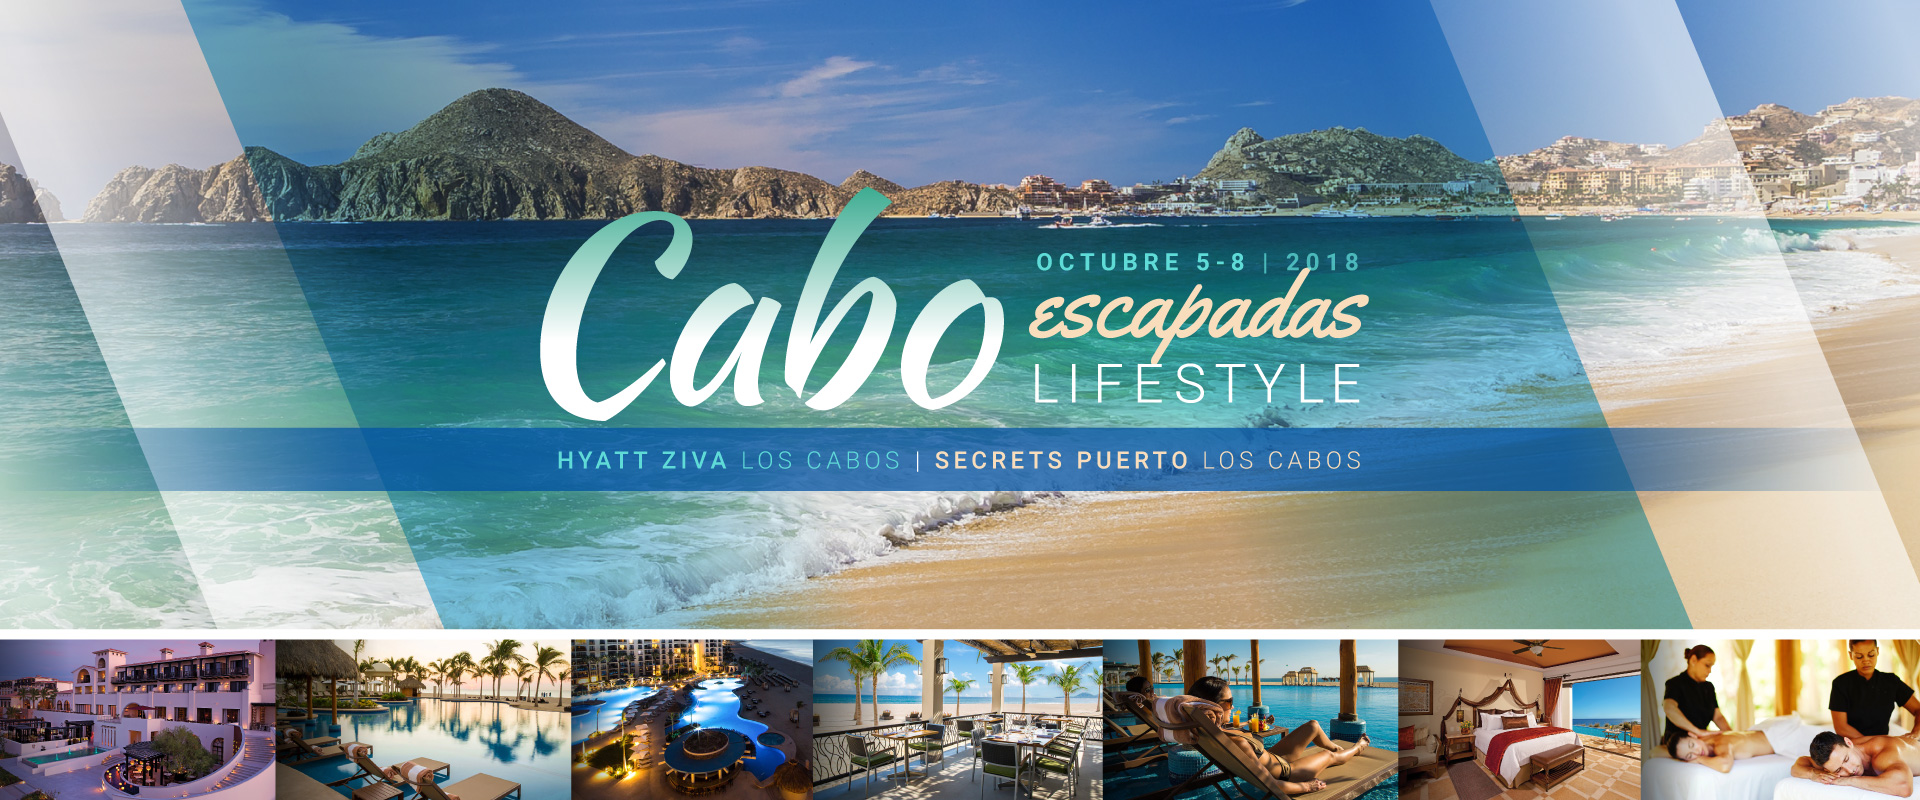 Cabo Lifestyle Getaway!